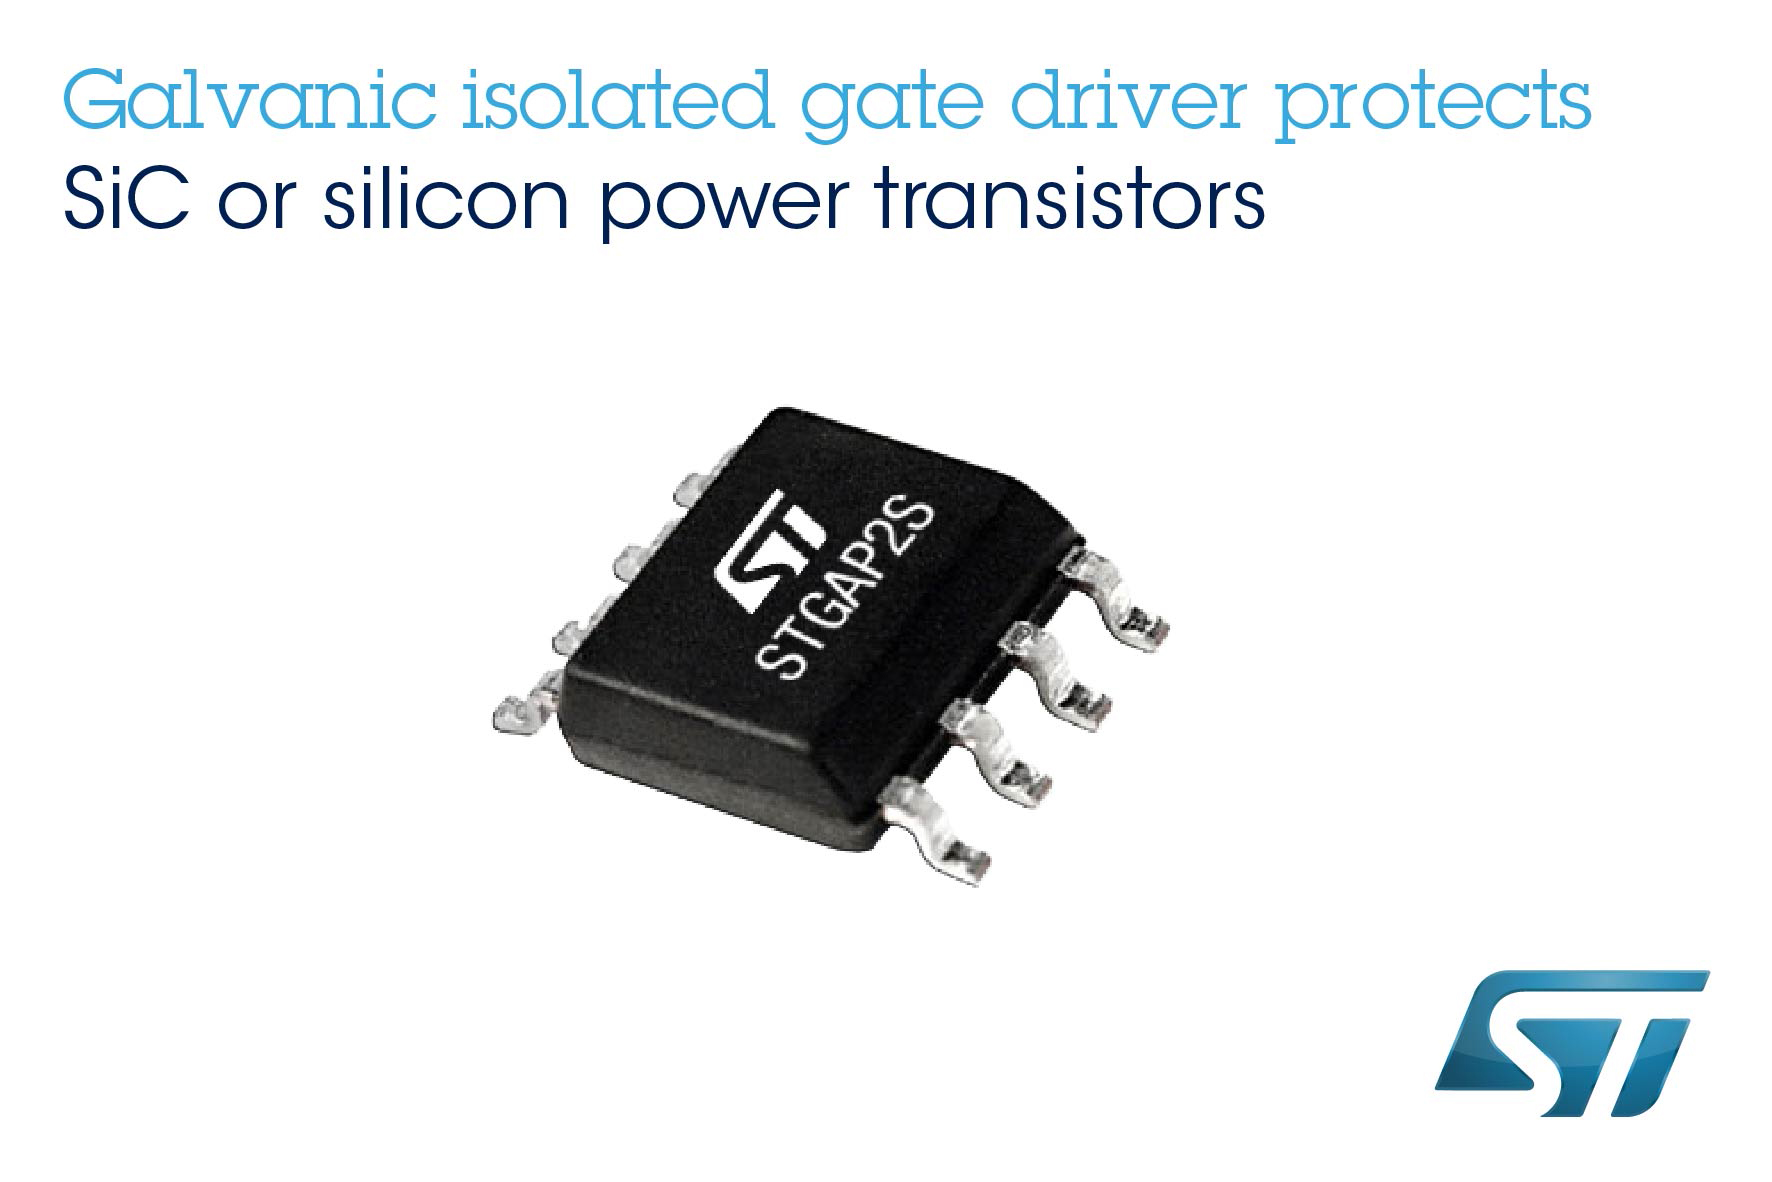 Feature Rich Galvanic Isolated Gate Driver From Stmicroelectronics Mosfet Circuits Driverampnbspfrom Controls And Protects Sic